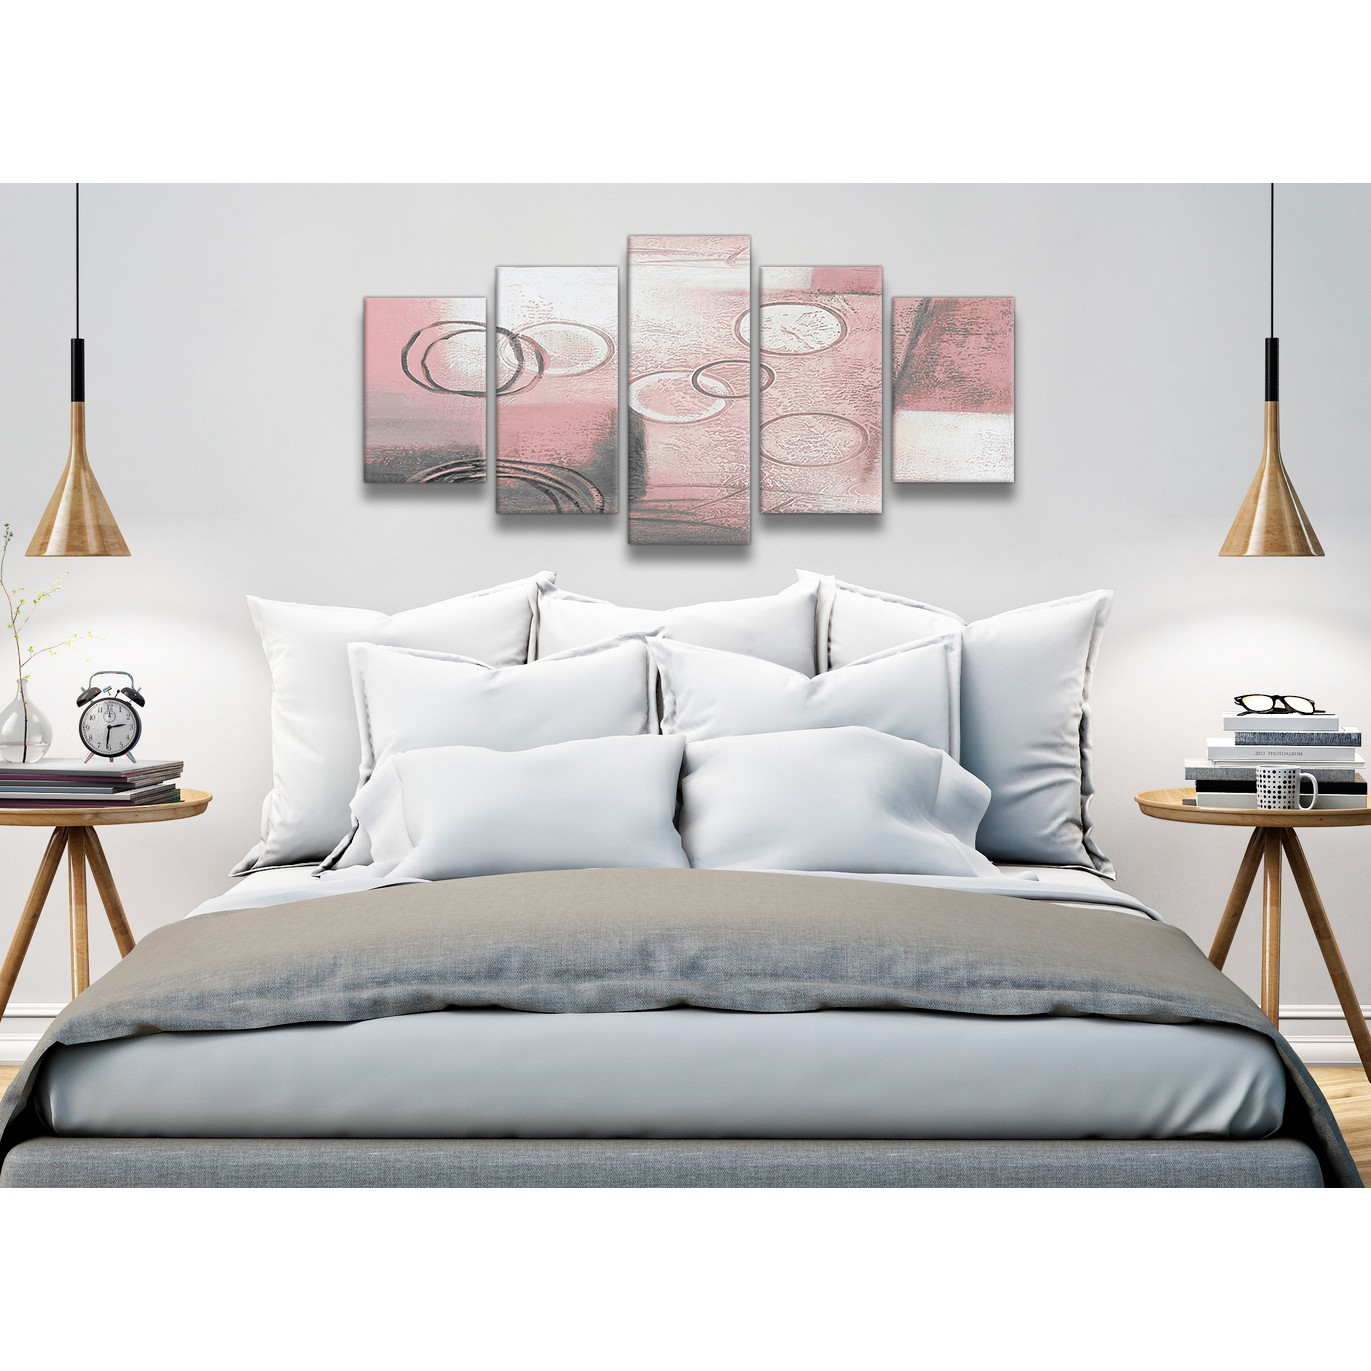 office canvas art. Display Gallery Item 1; 5 Piece Blush Pink Grey Painting Abstract Office Canvas Wall Art Decor - 5433 160cm 2